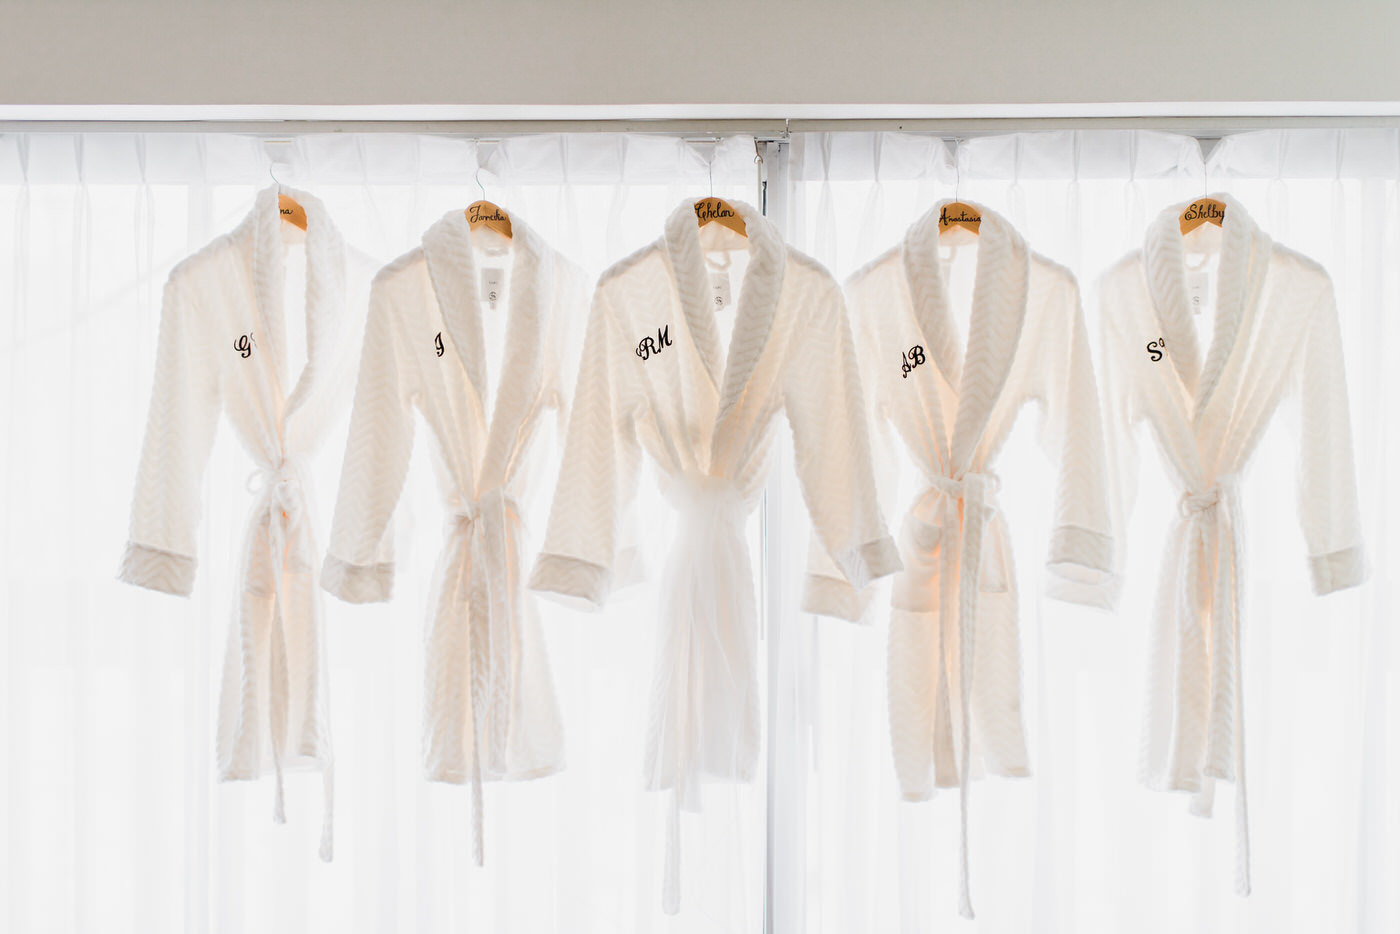 bridesmaids dresses hanging on frame